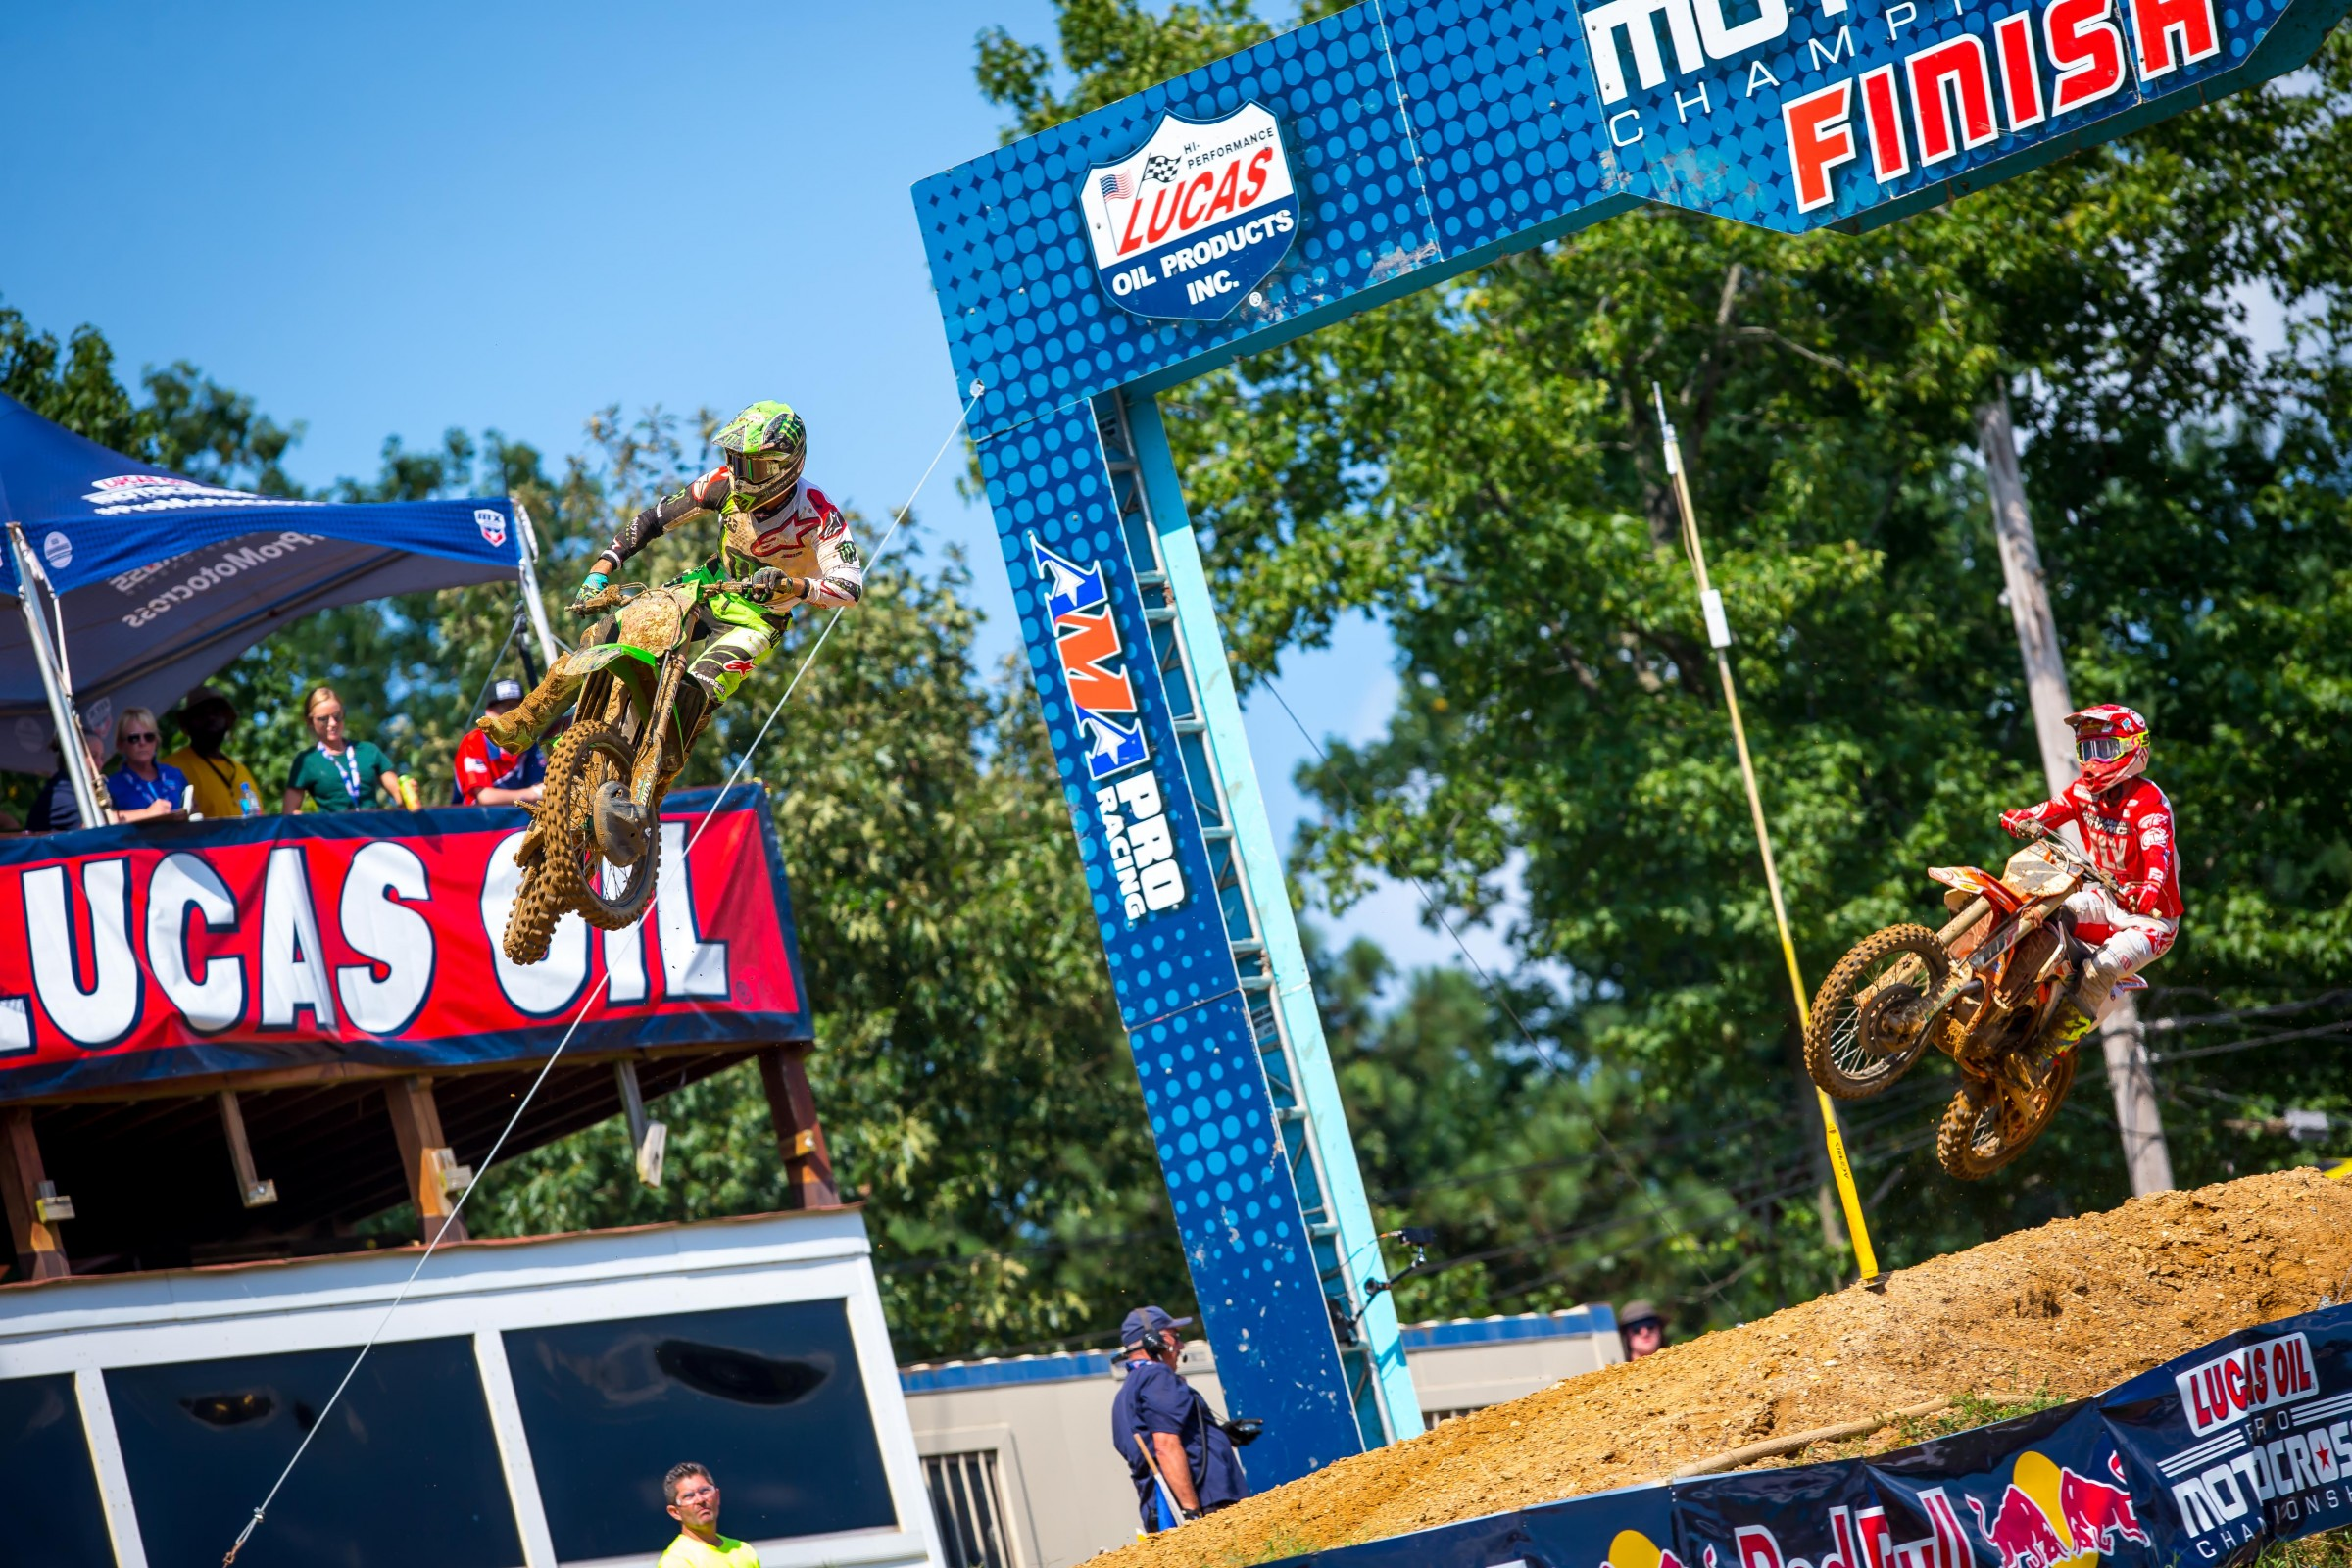 Baggett led the second moto for 15 minutes before being overtaken by Tomac in the rollers before the finish line.